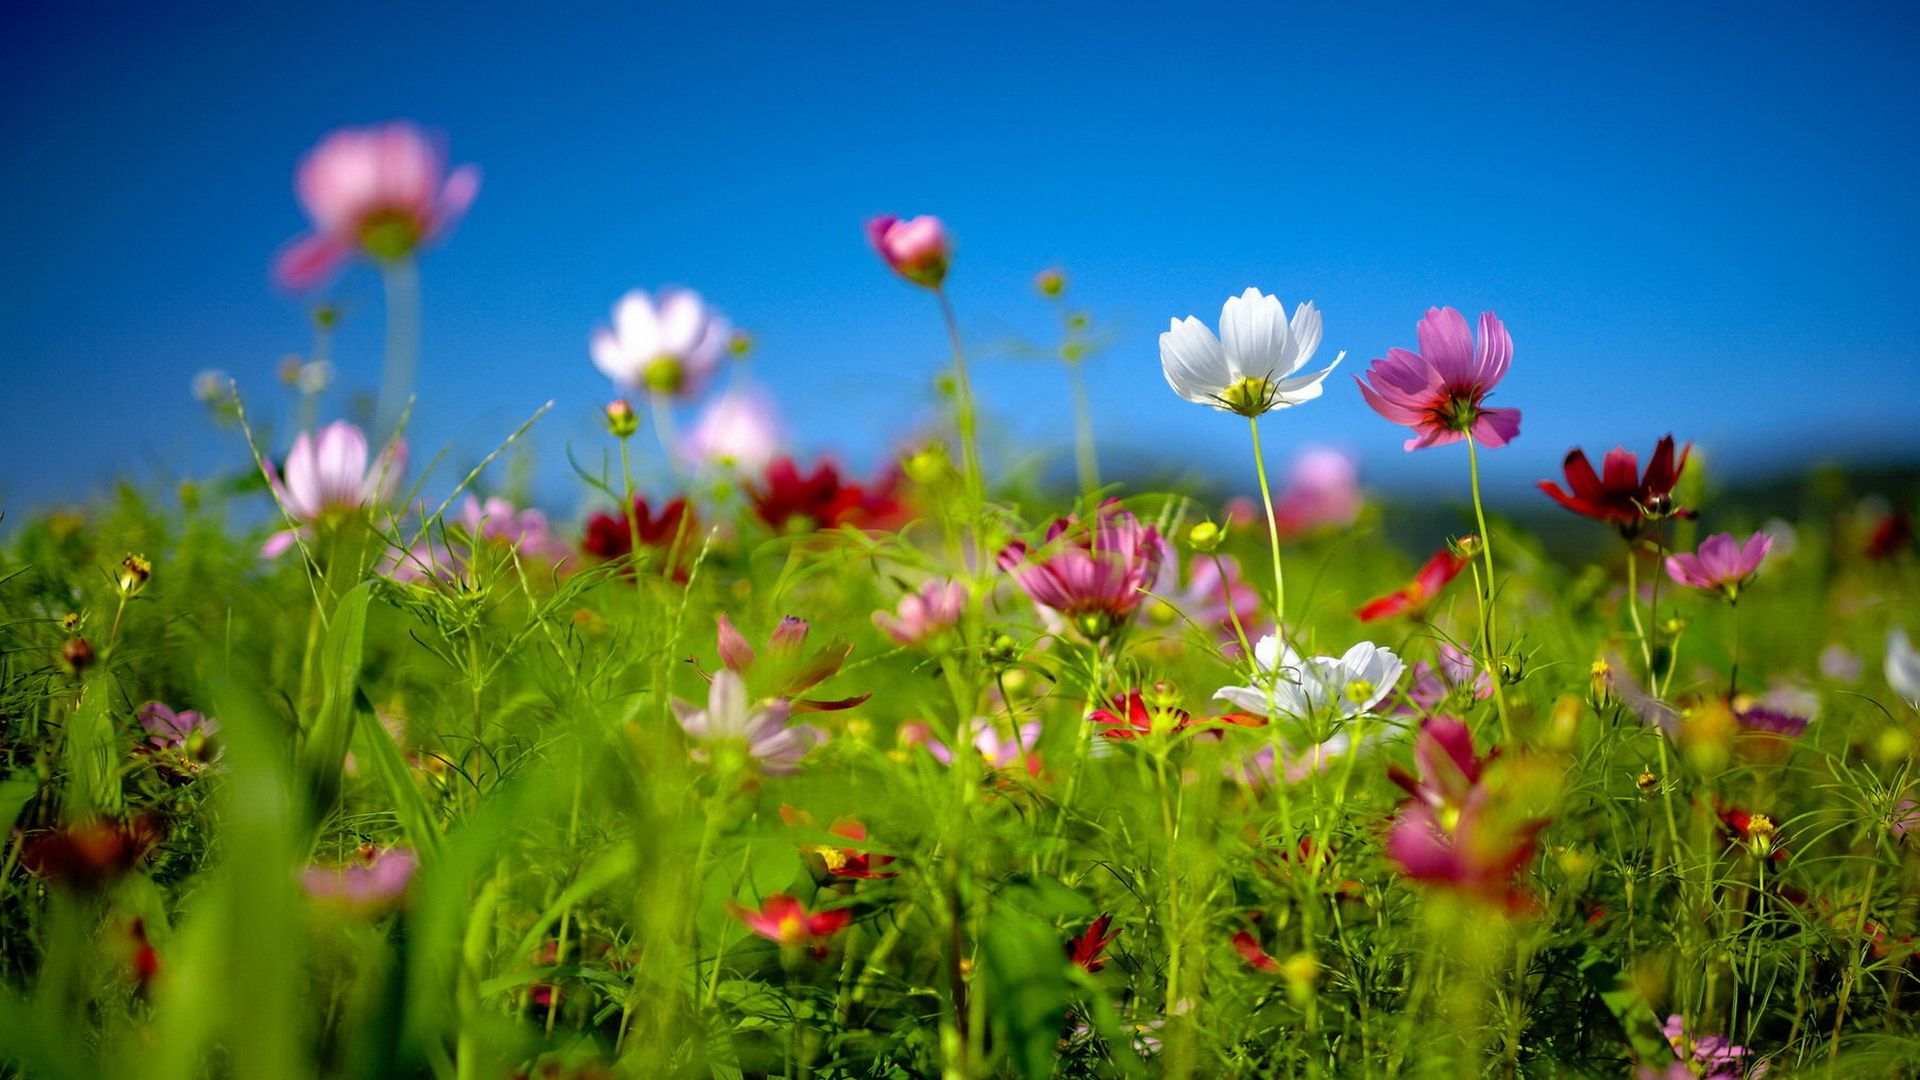 Free spring desktop wallpaper download free spring wildflowers free spring desktop wallpaper download free spring wildflowers desktop background and wallpapers mightylinksfo Image collections